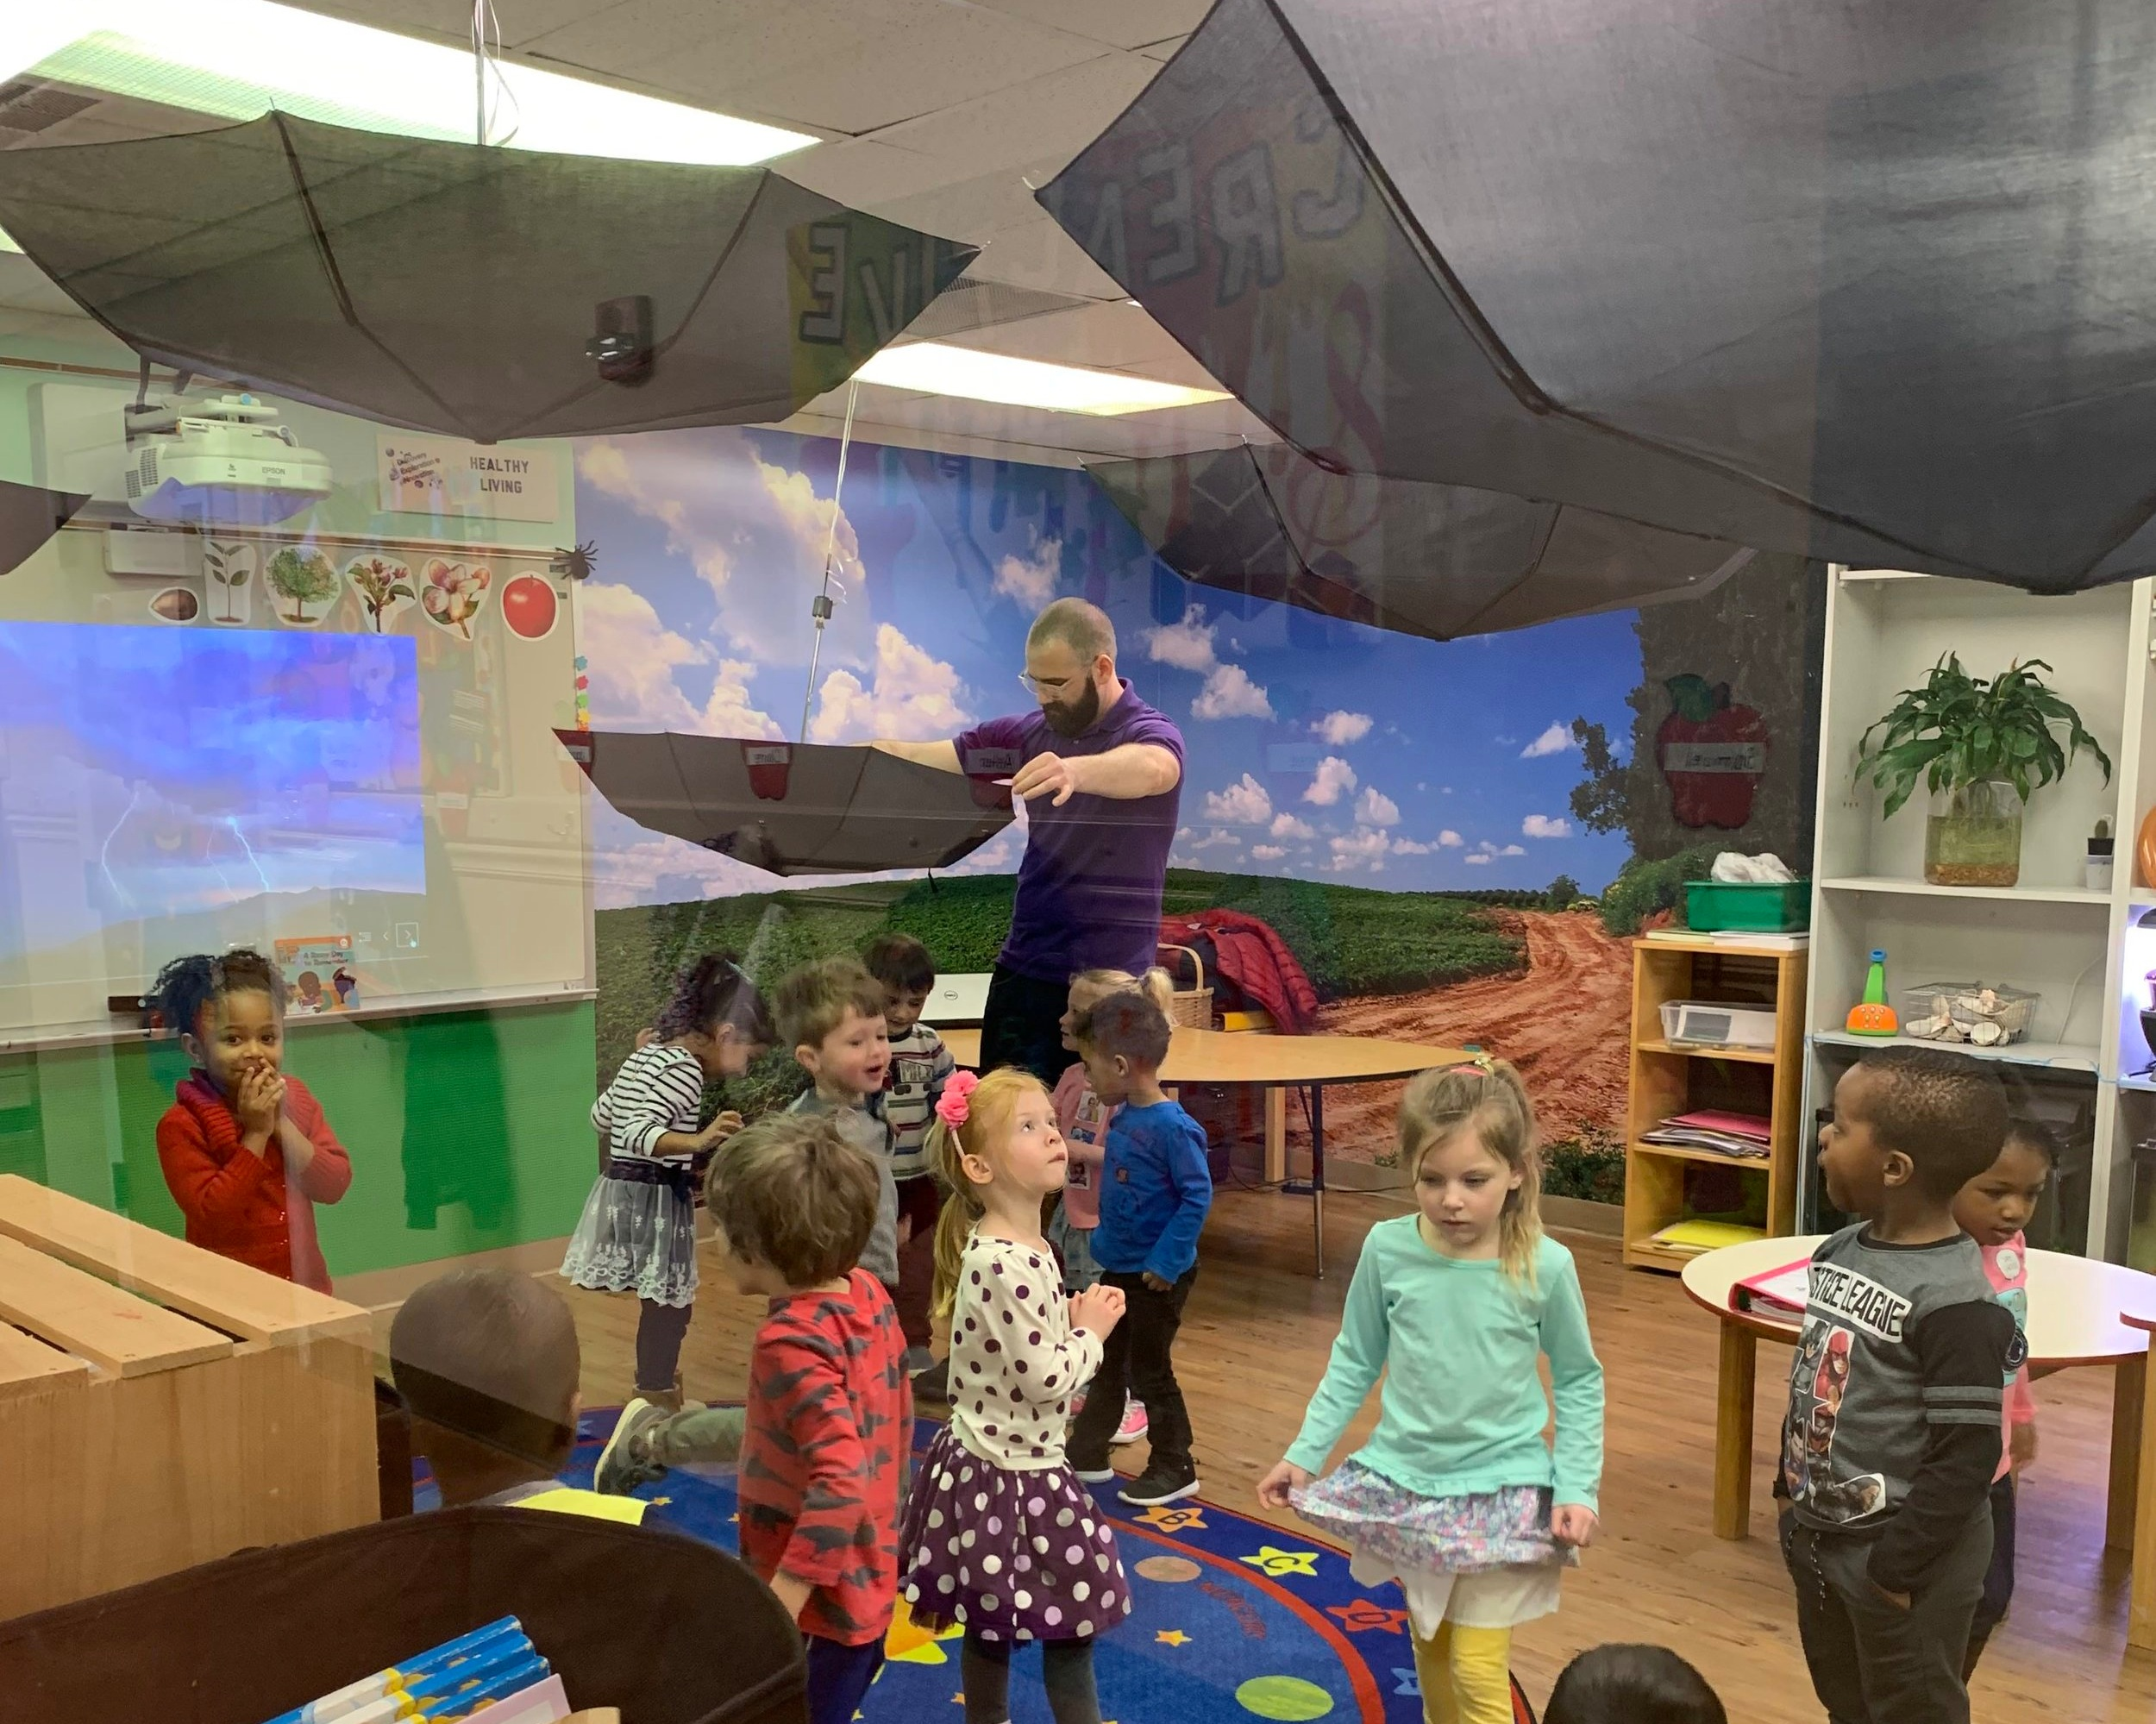 Enrichments - Unlike many daycares, we integration enrichment activities into our daily experiences. Our STEM Den allows students to explore their world through hands on experiences and activities. The time our students spend in the STEM Den is often their favorite time of the Day.